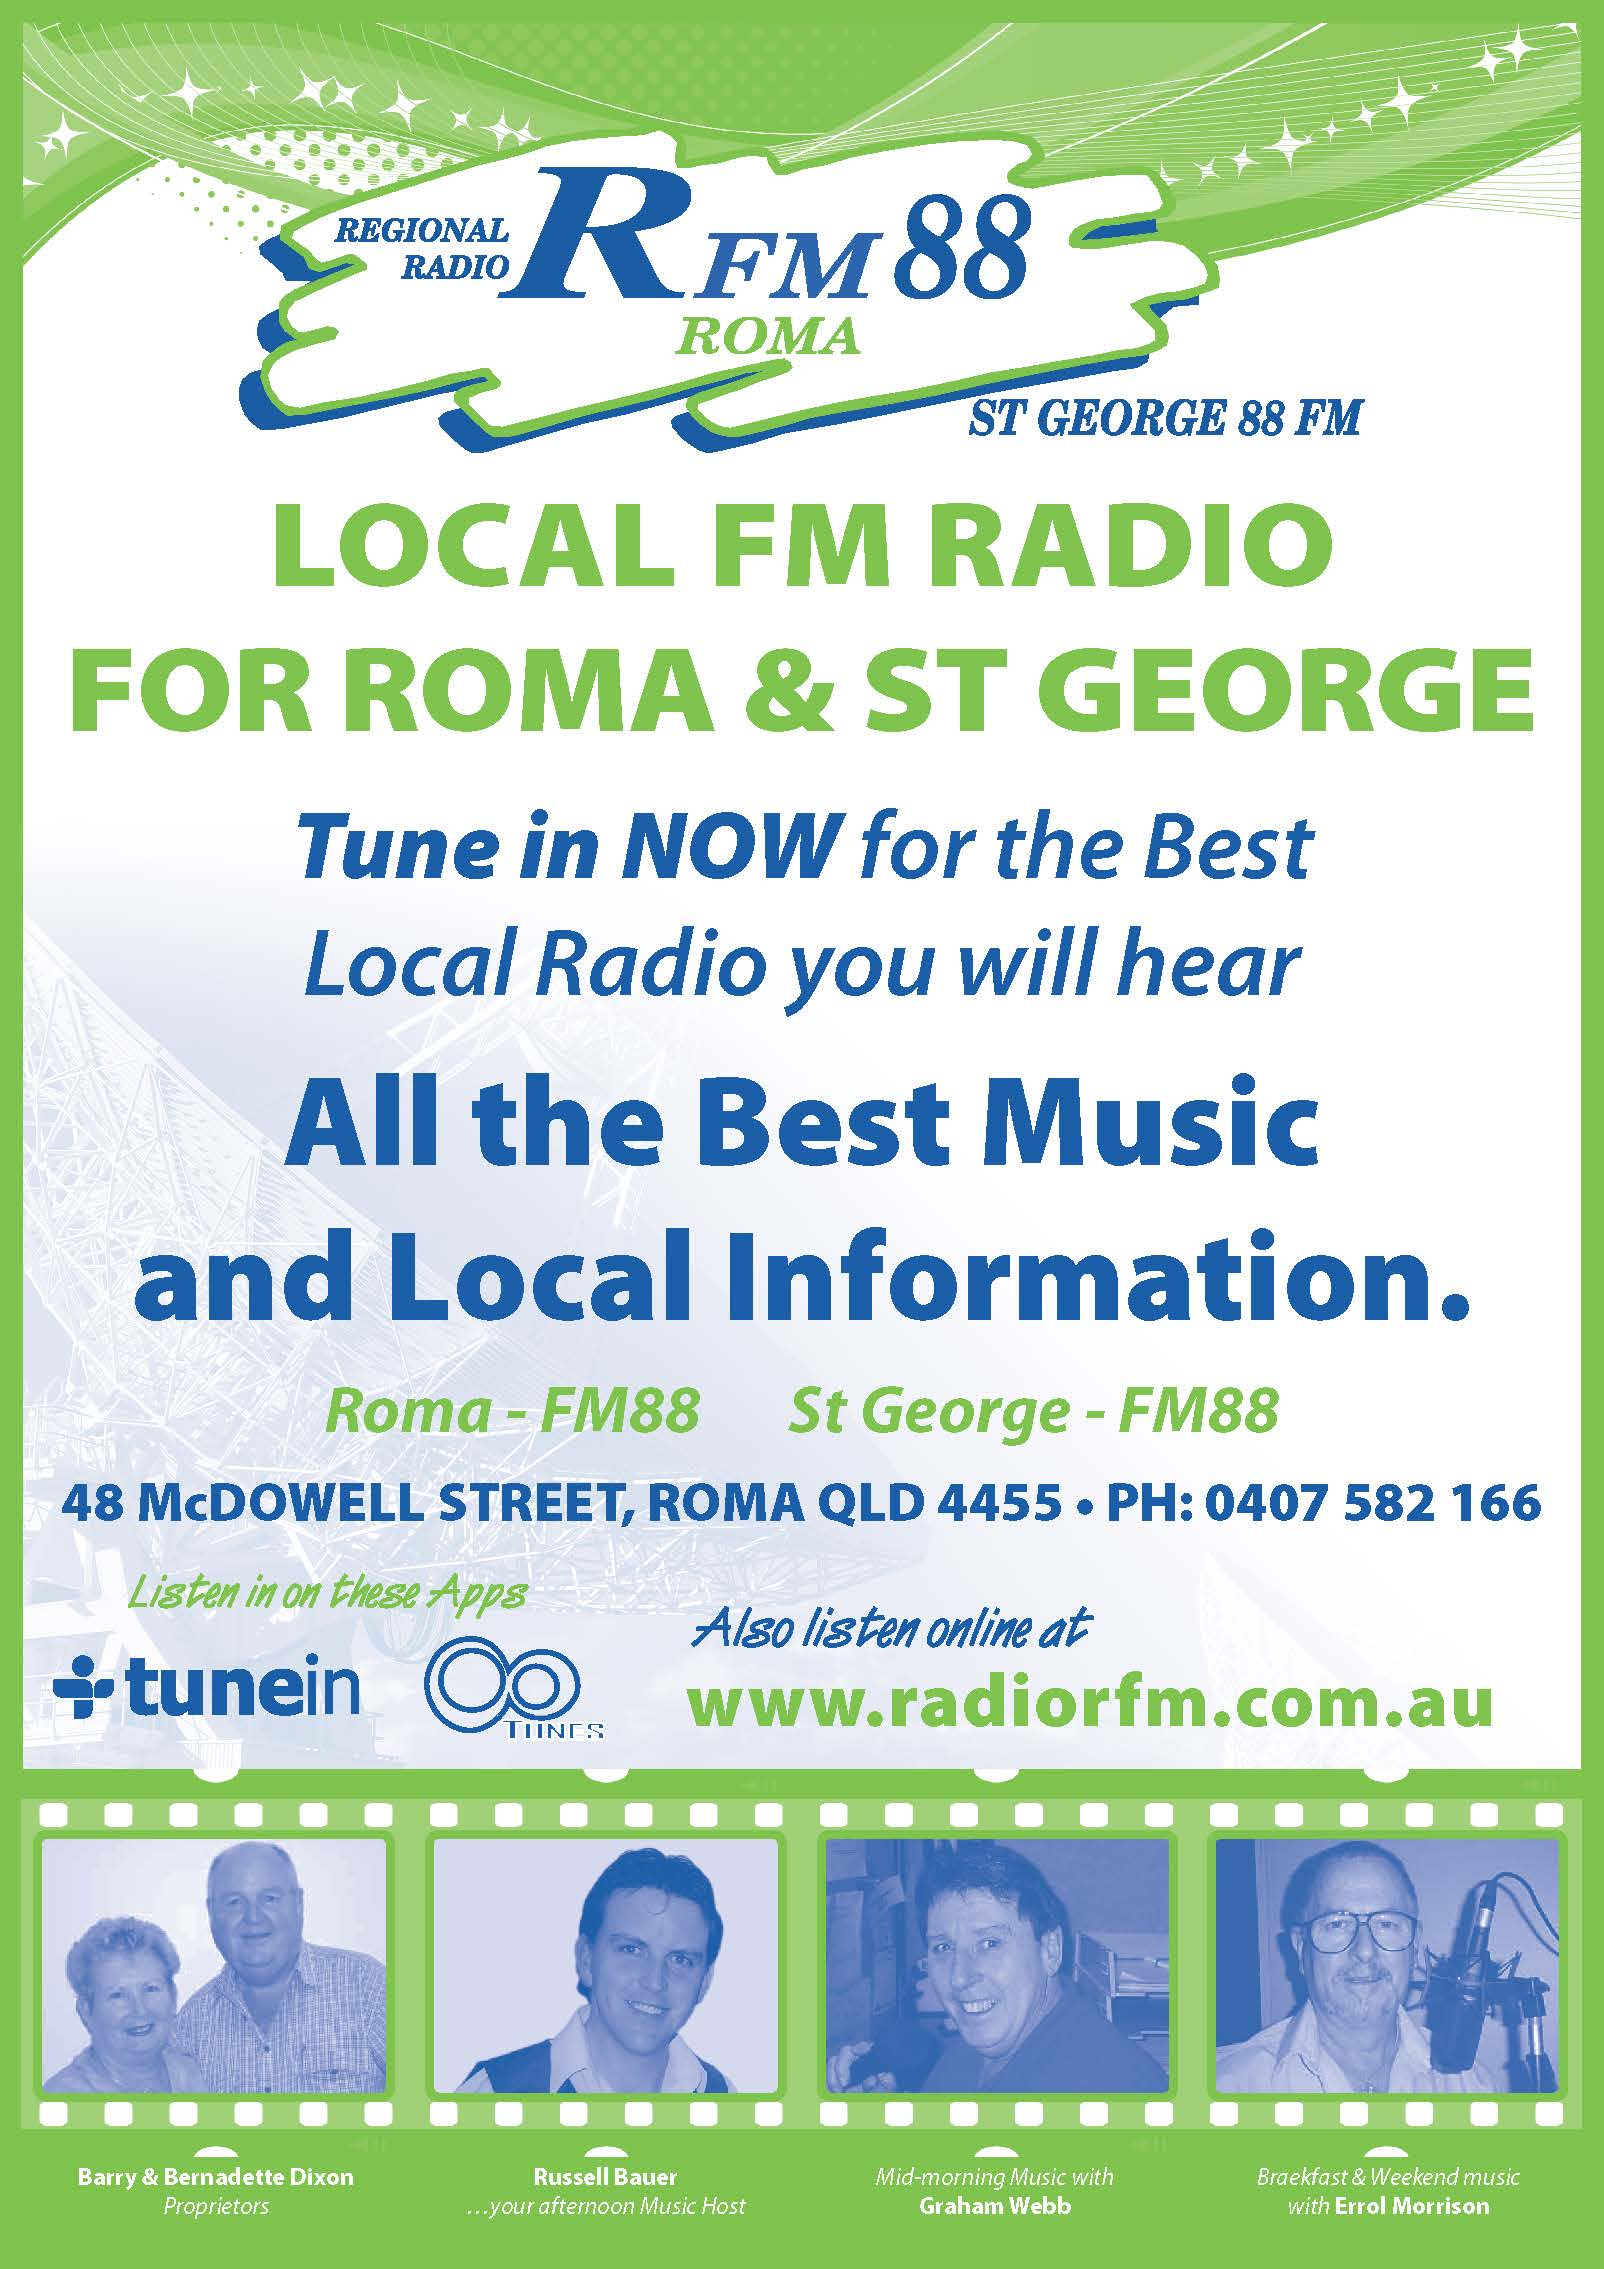 Radio Information Sheet